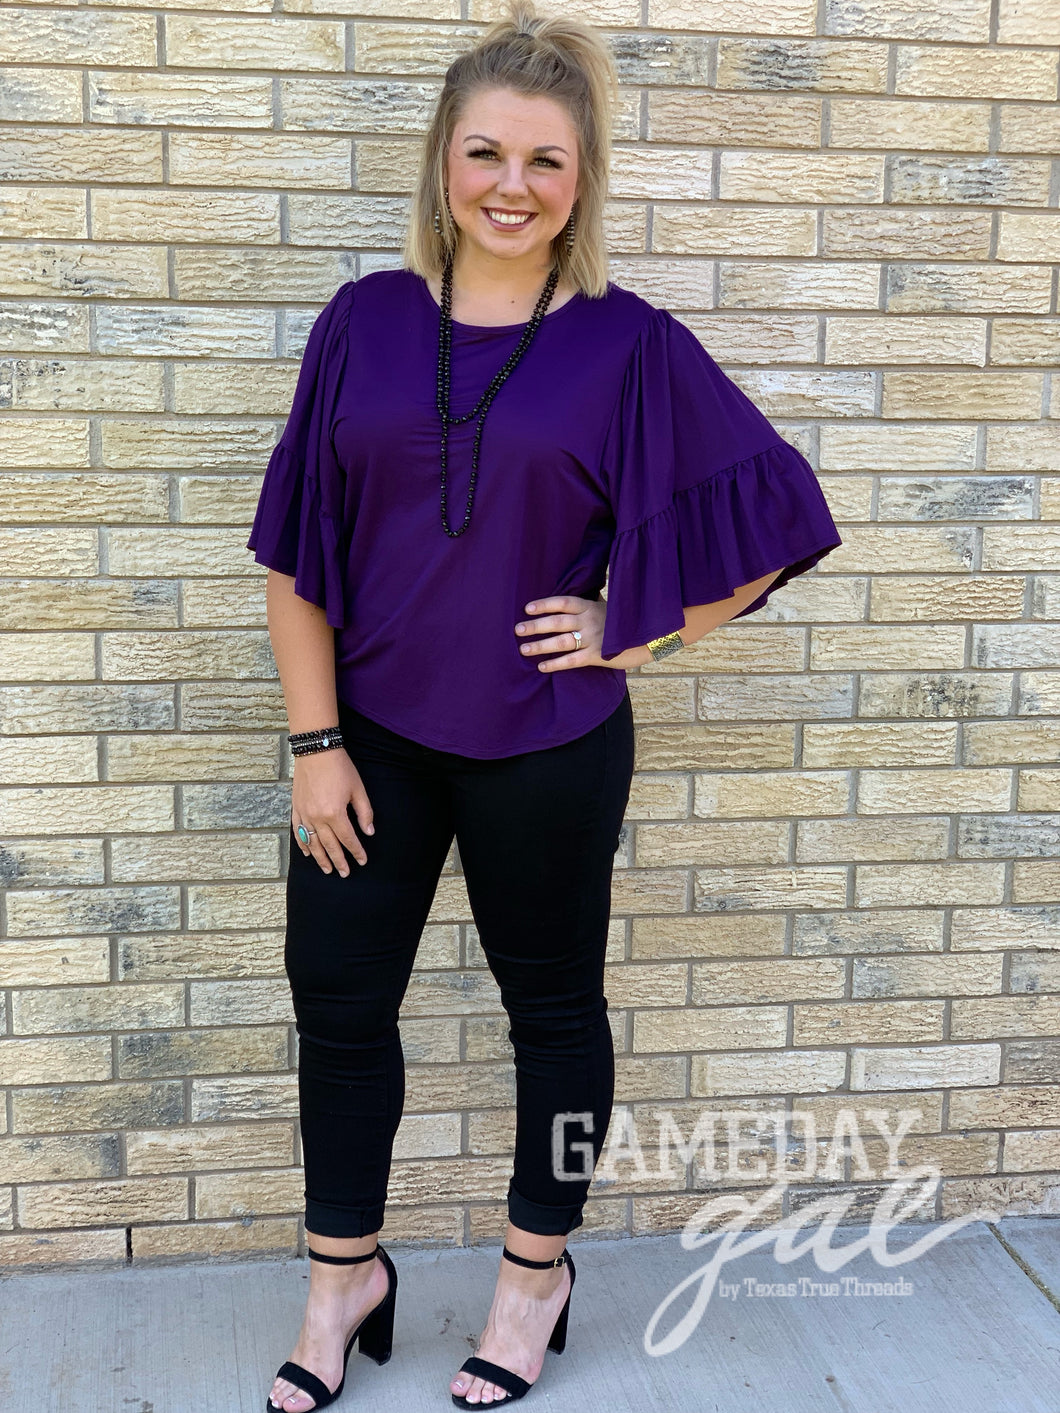 Stacie Ruffle Blouse by GameDay Gal Tops  Texas True Threads - Horse Creek Boutique